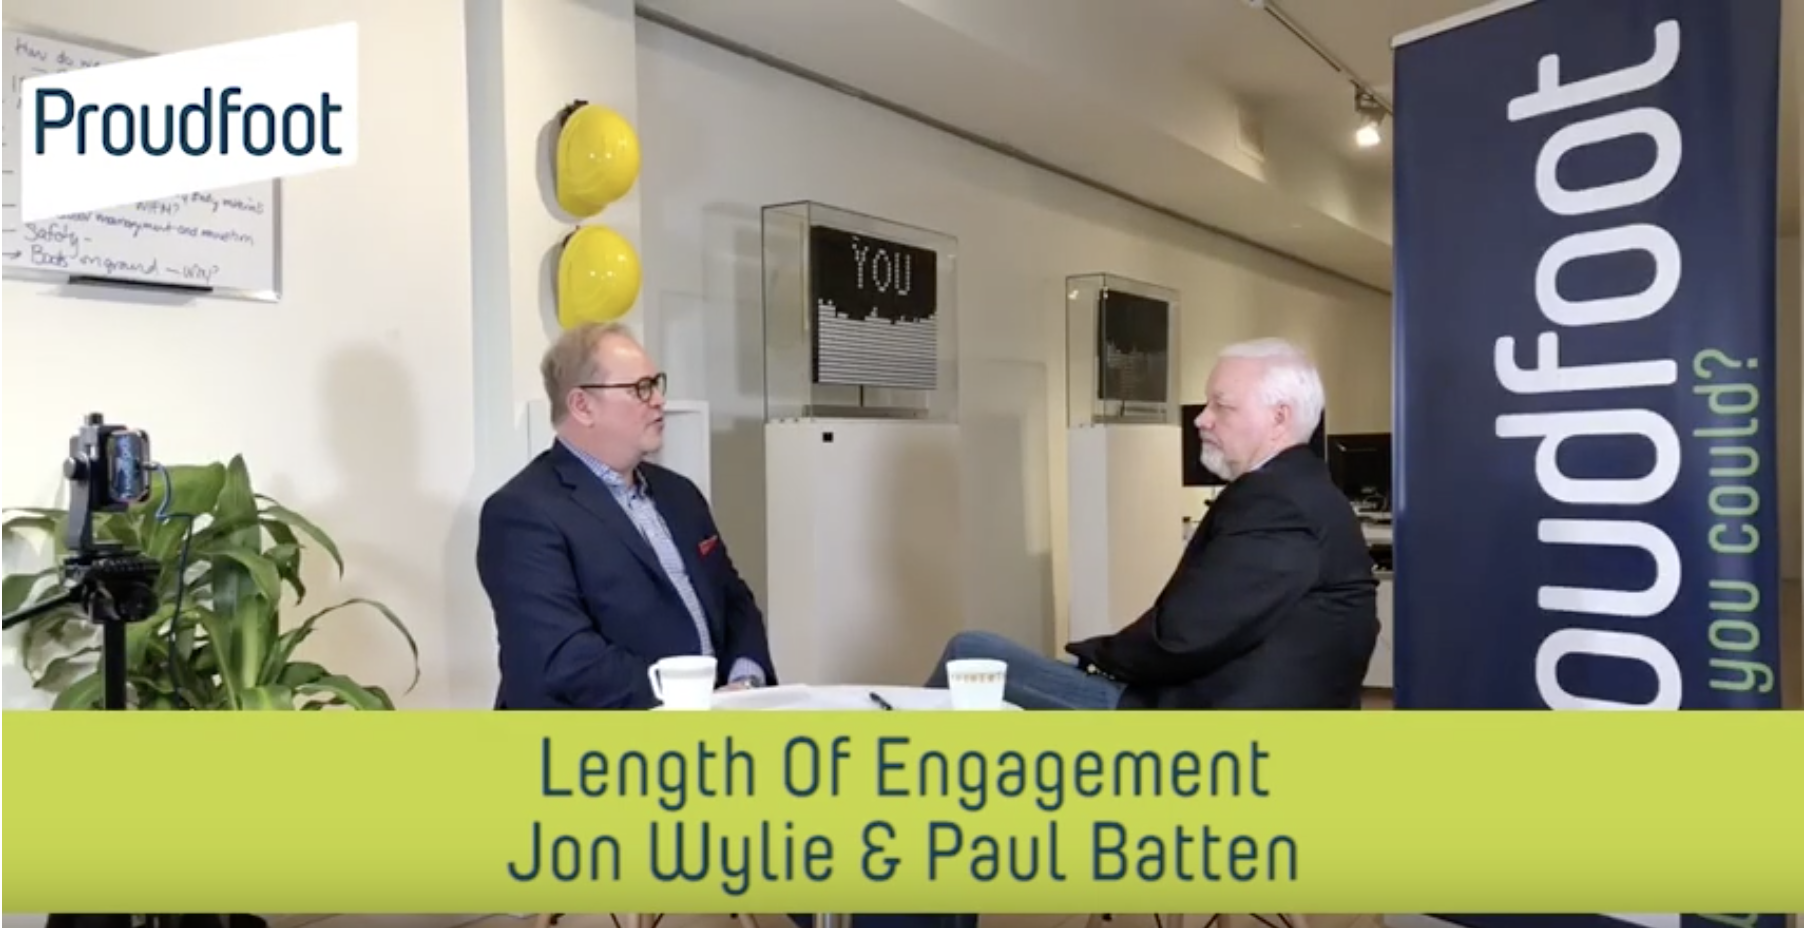 Proudfoot Length of Engagement